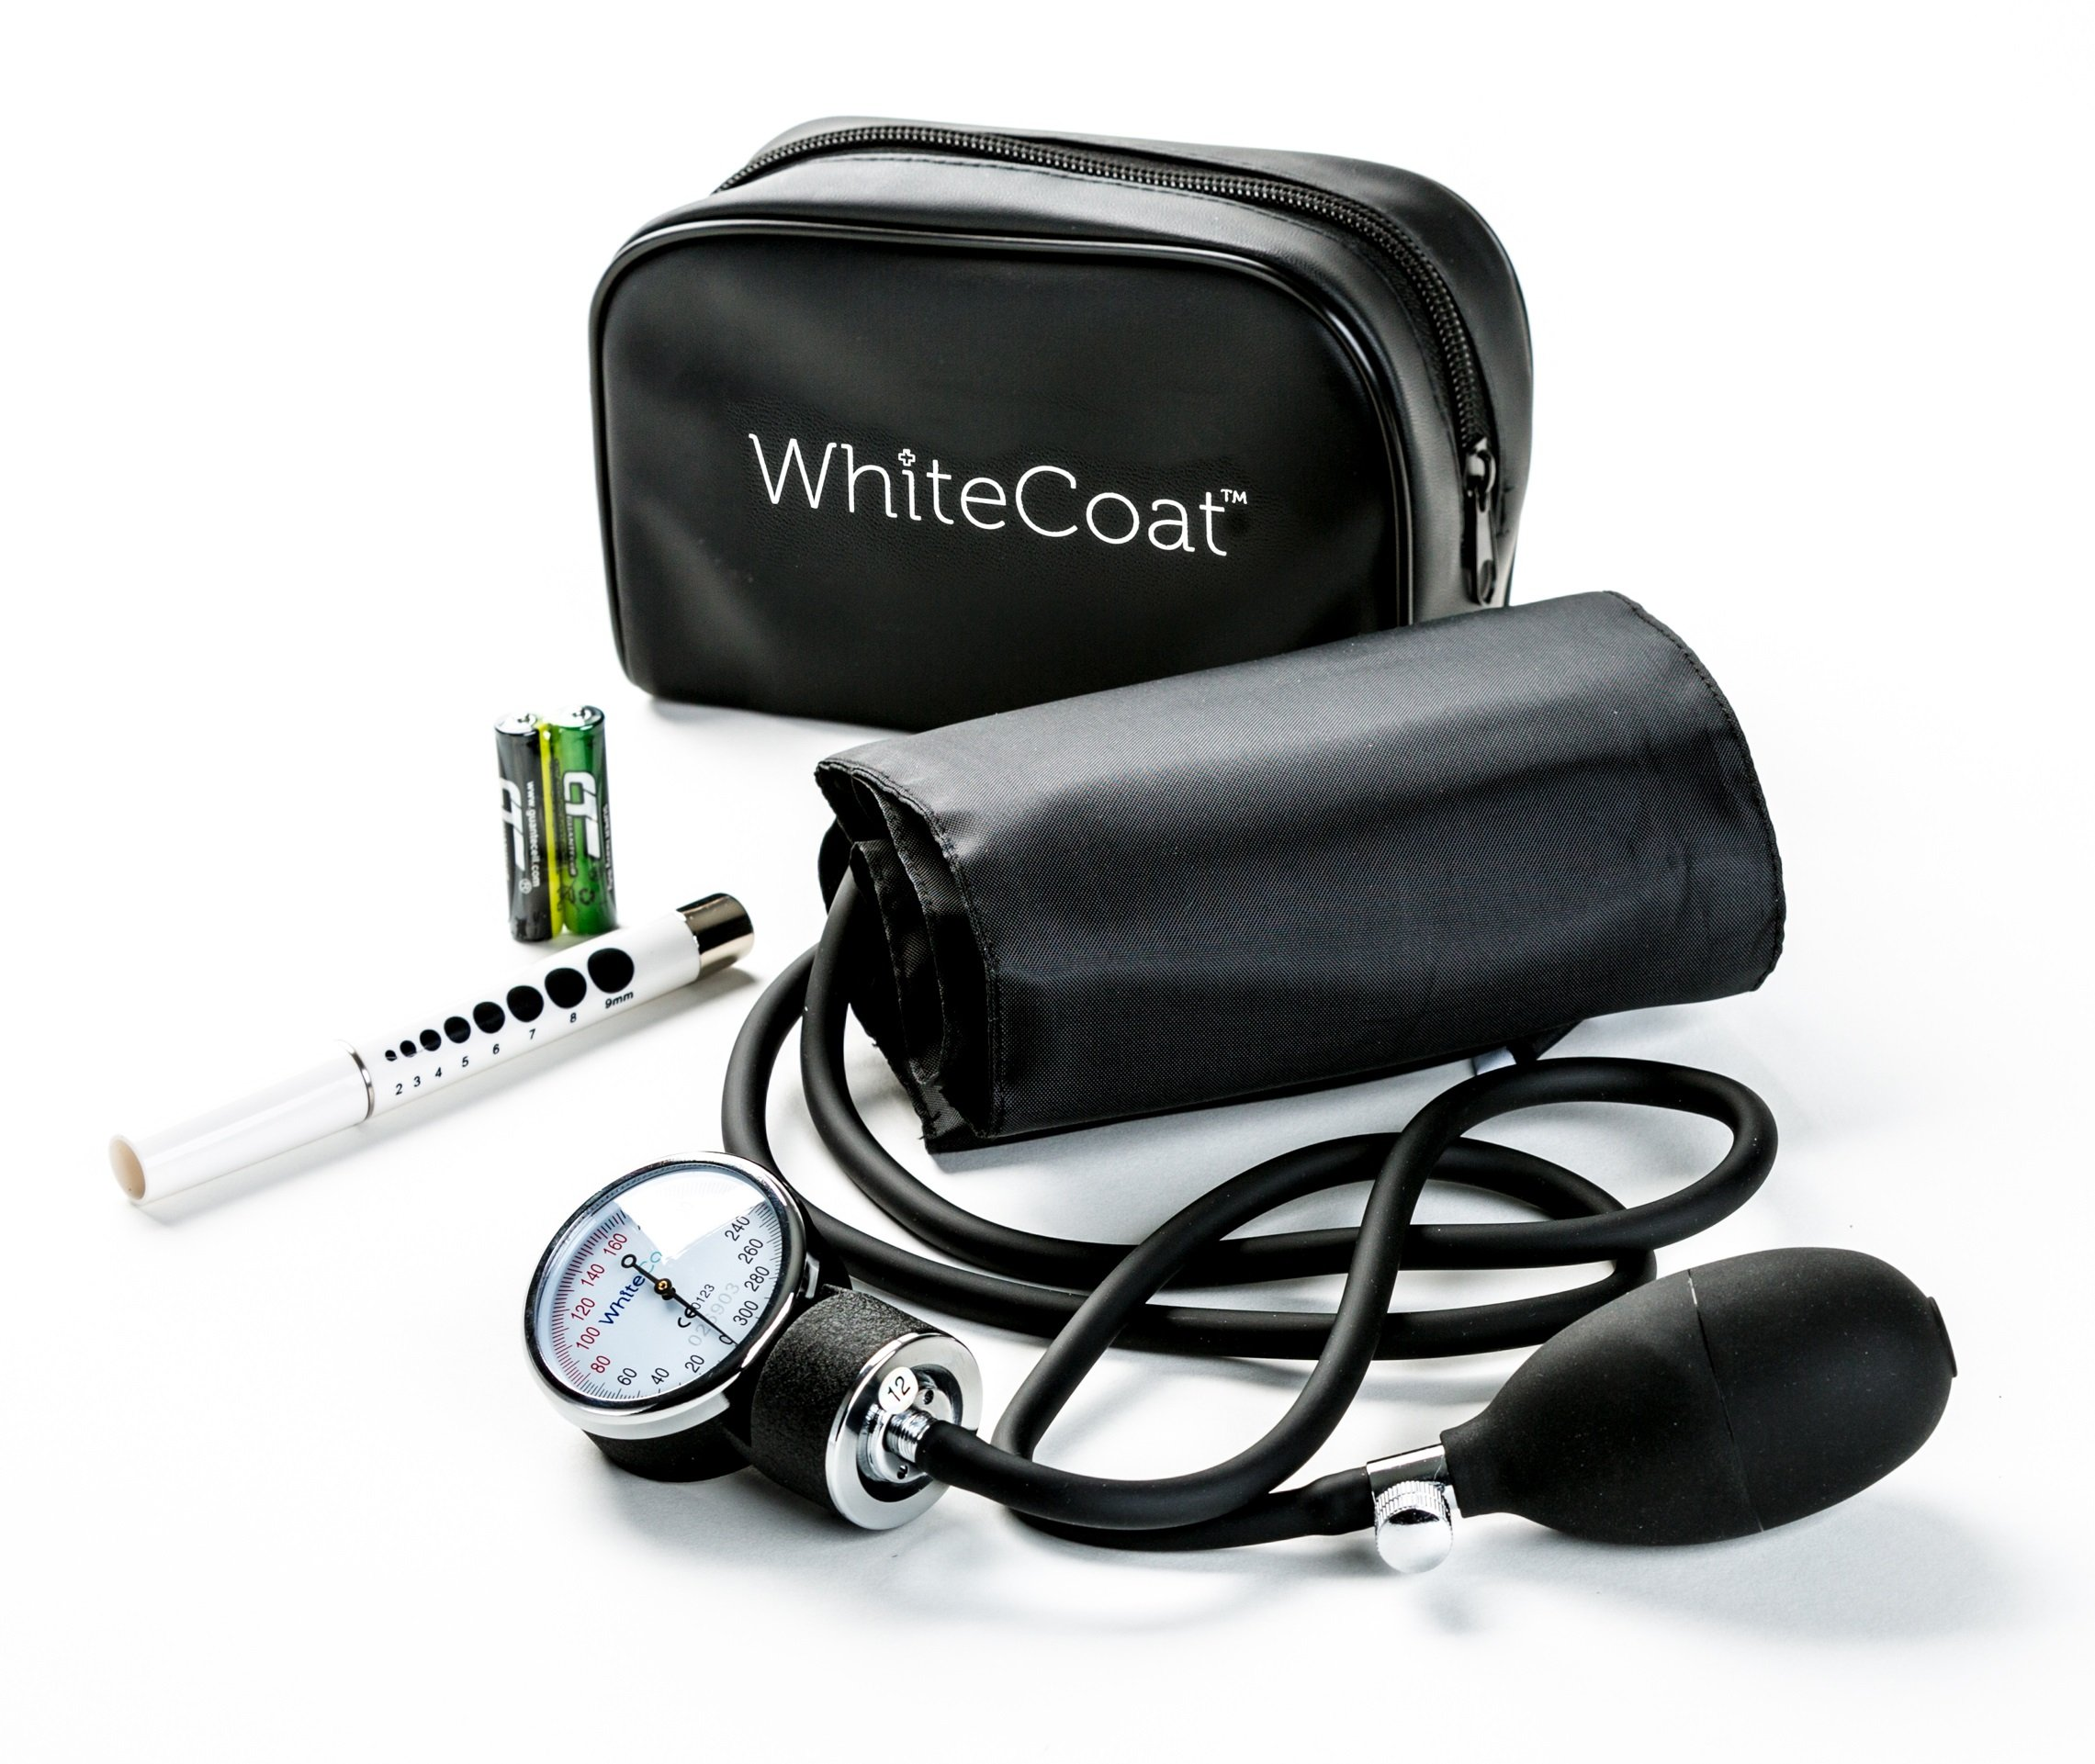 White Coat Deluxe Aneroid Sphygmomanometer Professional Blood Pressure Cuff Monitor with Adult Sized Black Cuff and Carrying Case Bonus LED Penlight with Pupil Gauge